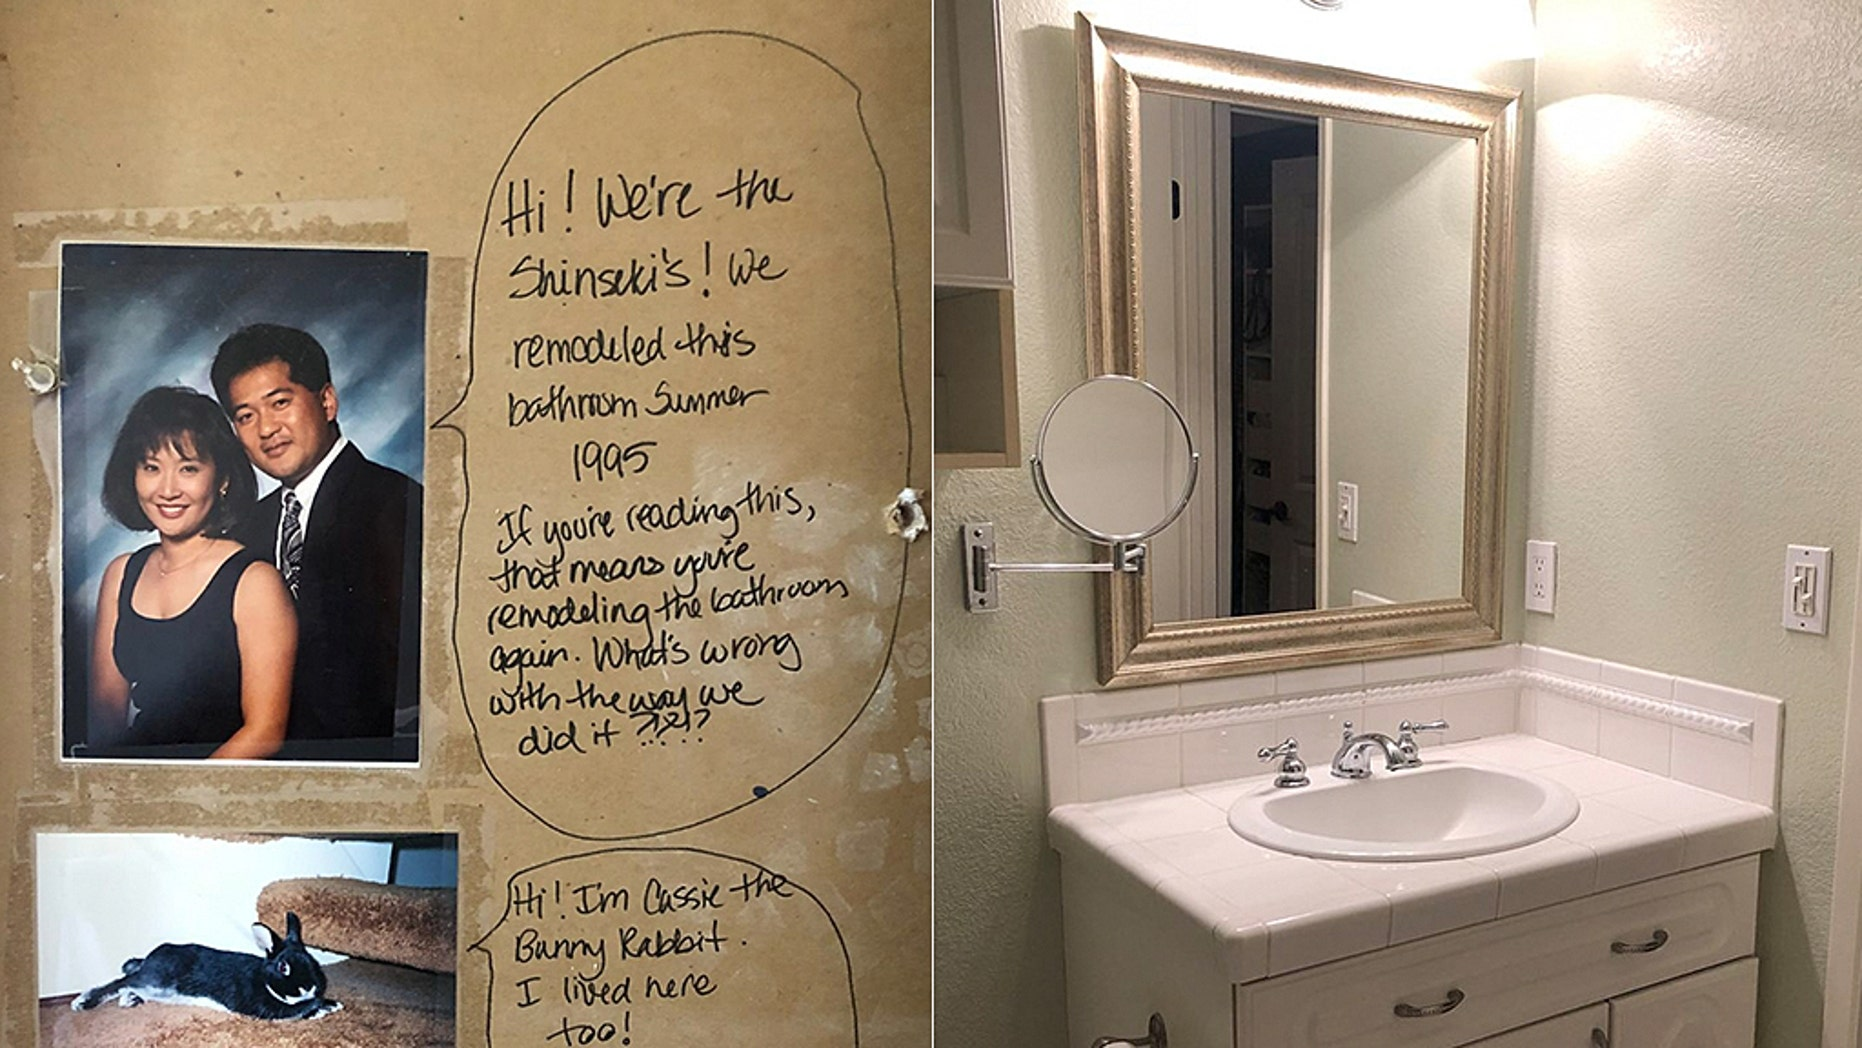 A couple in California found a surprising message (left) in their bathroom wall while remodeling.